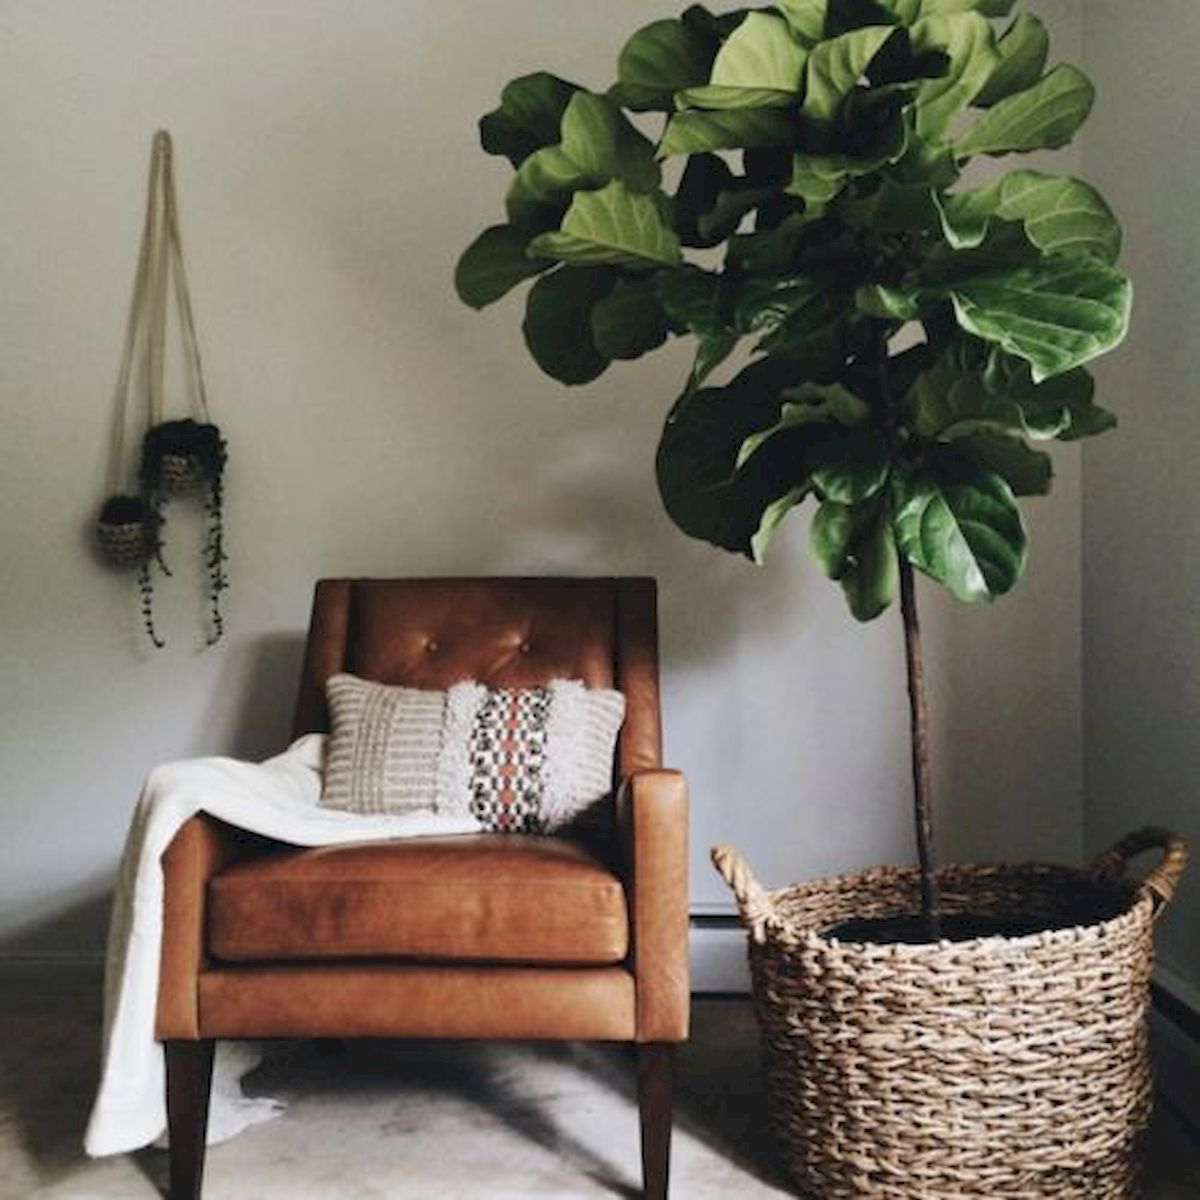 Armchair that is in the middle of a living room in which there is a large plant inside a palm basket